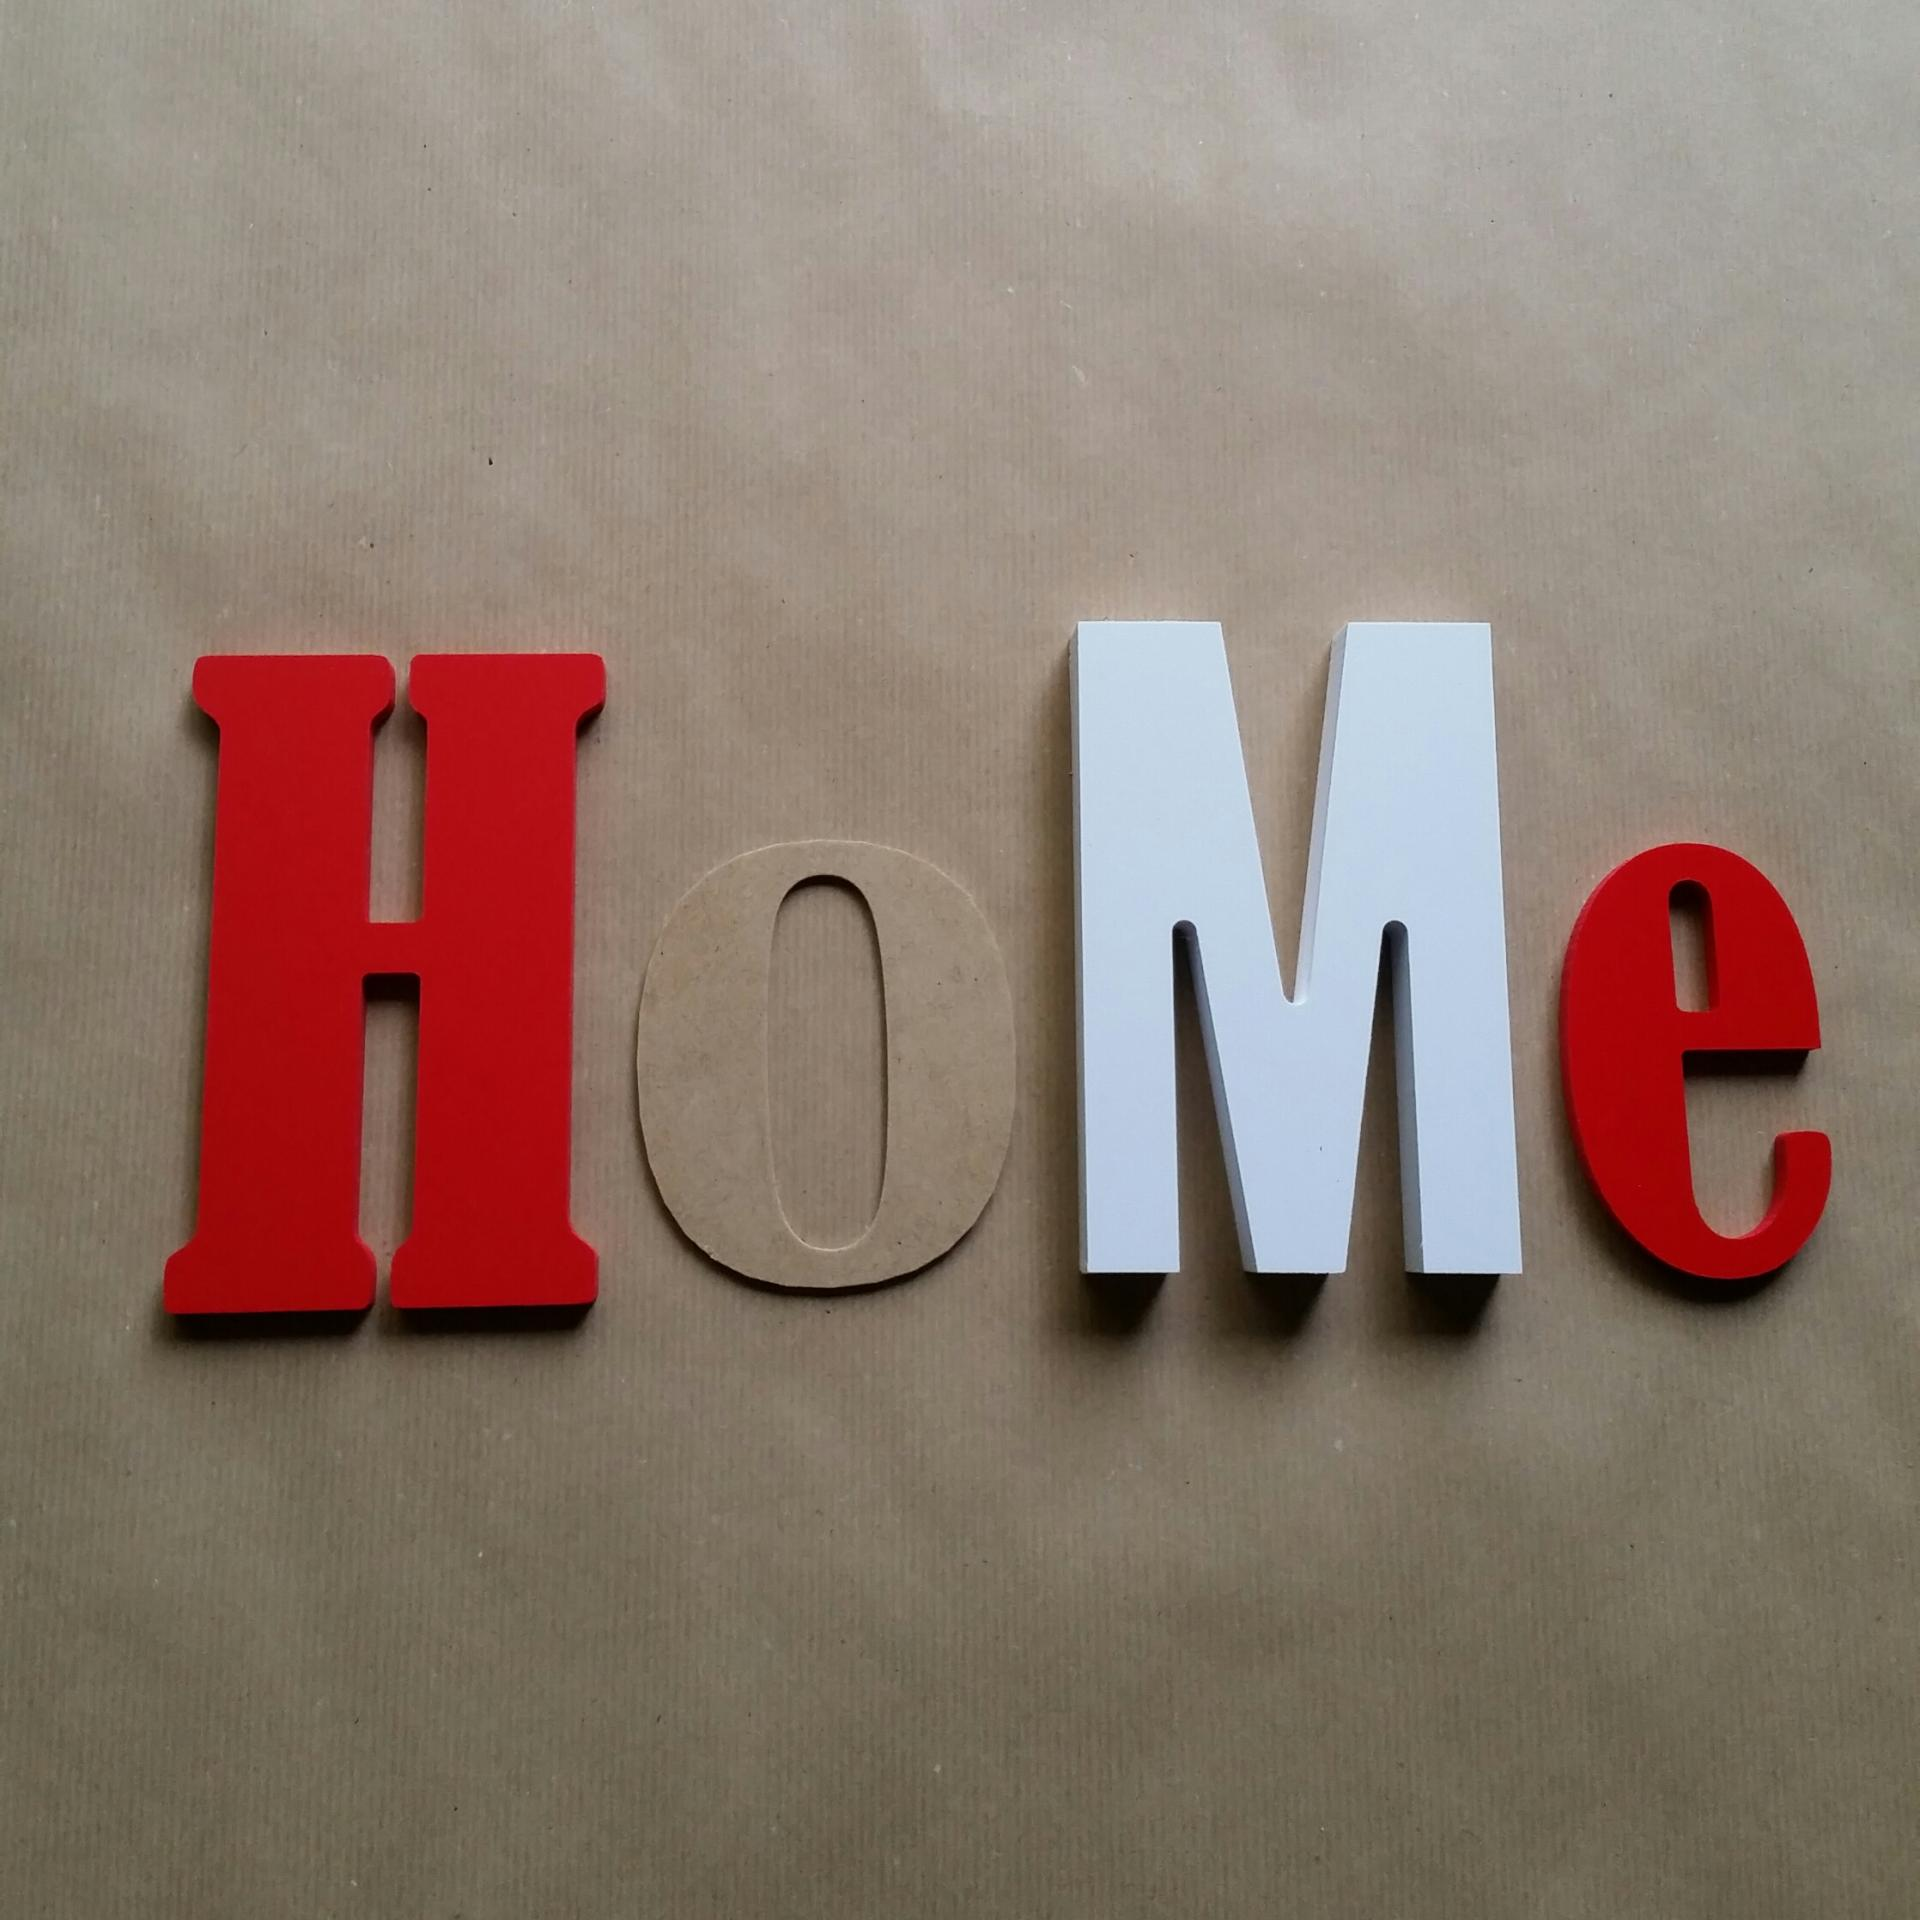 Lettres decoratives home 061020 3